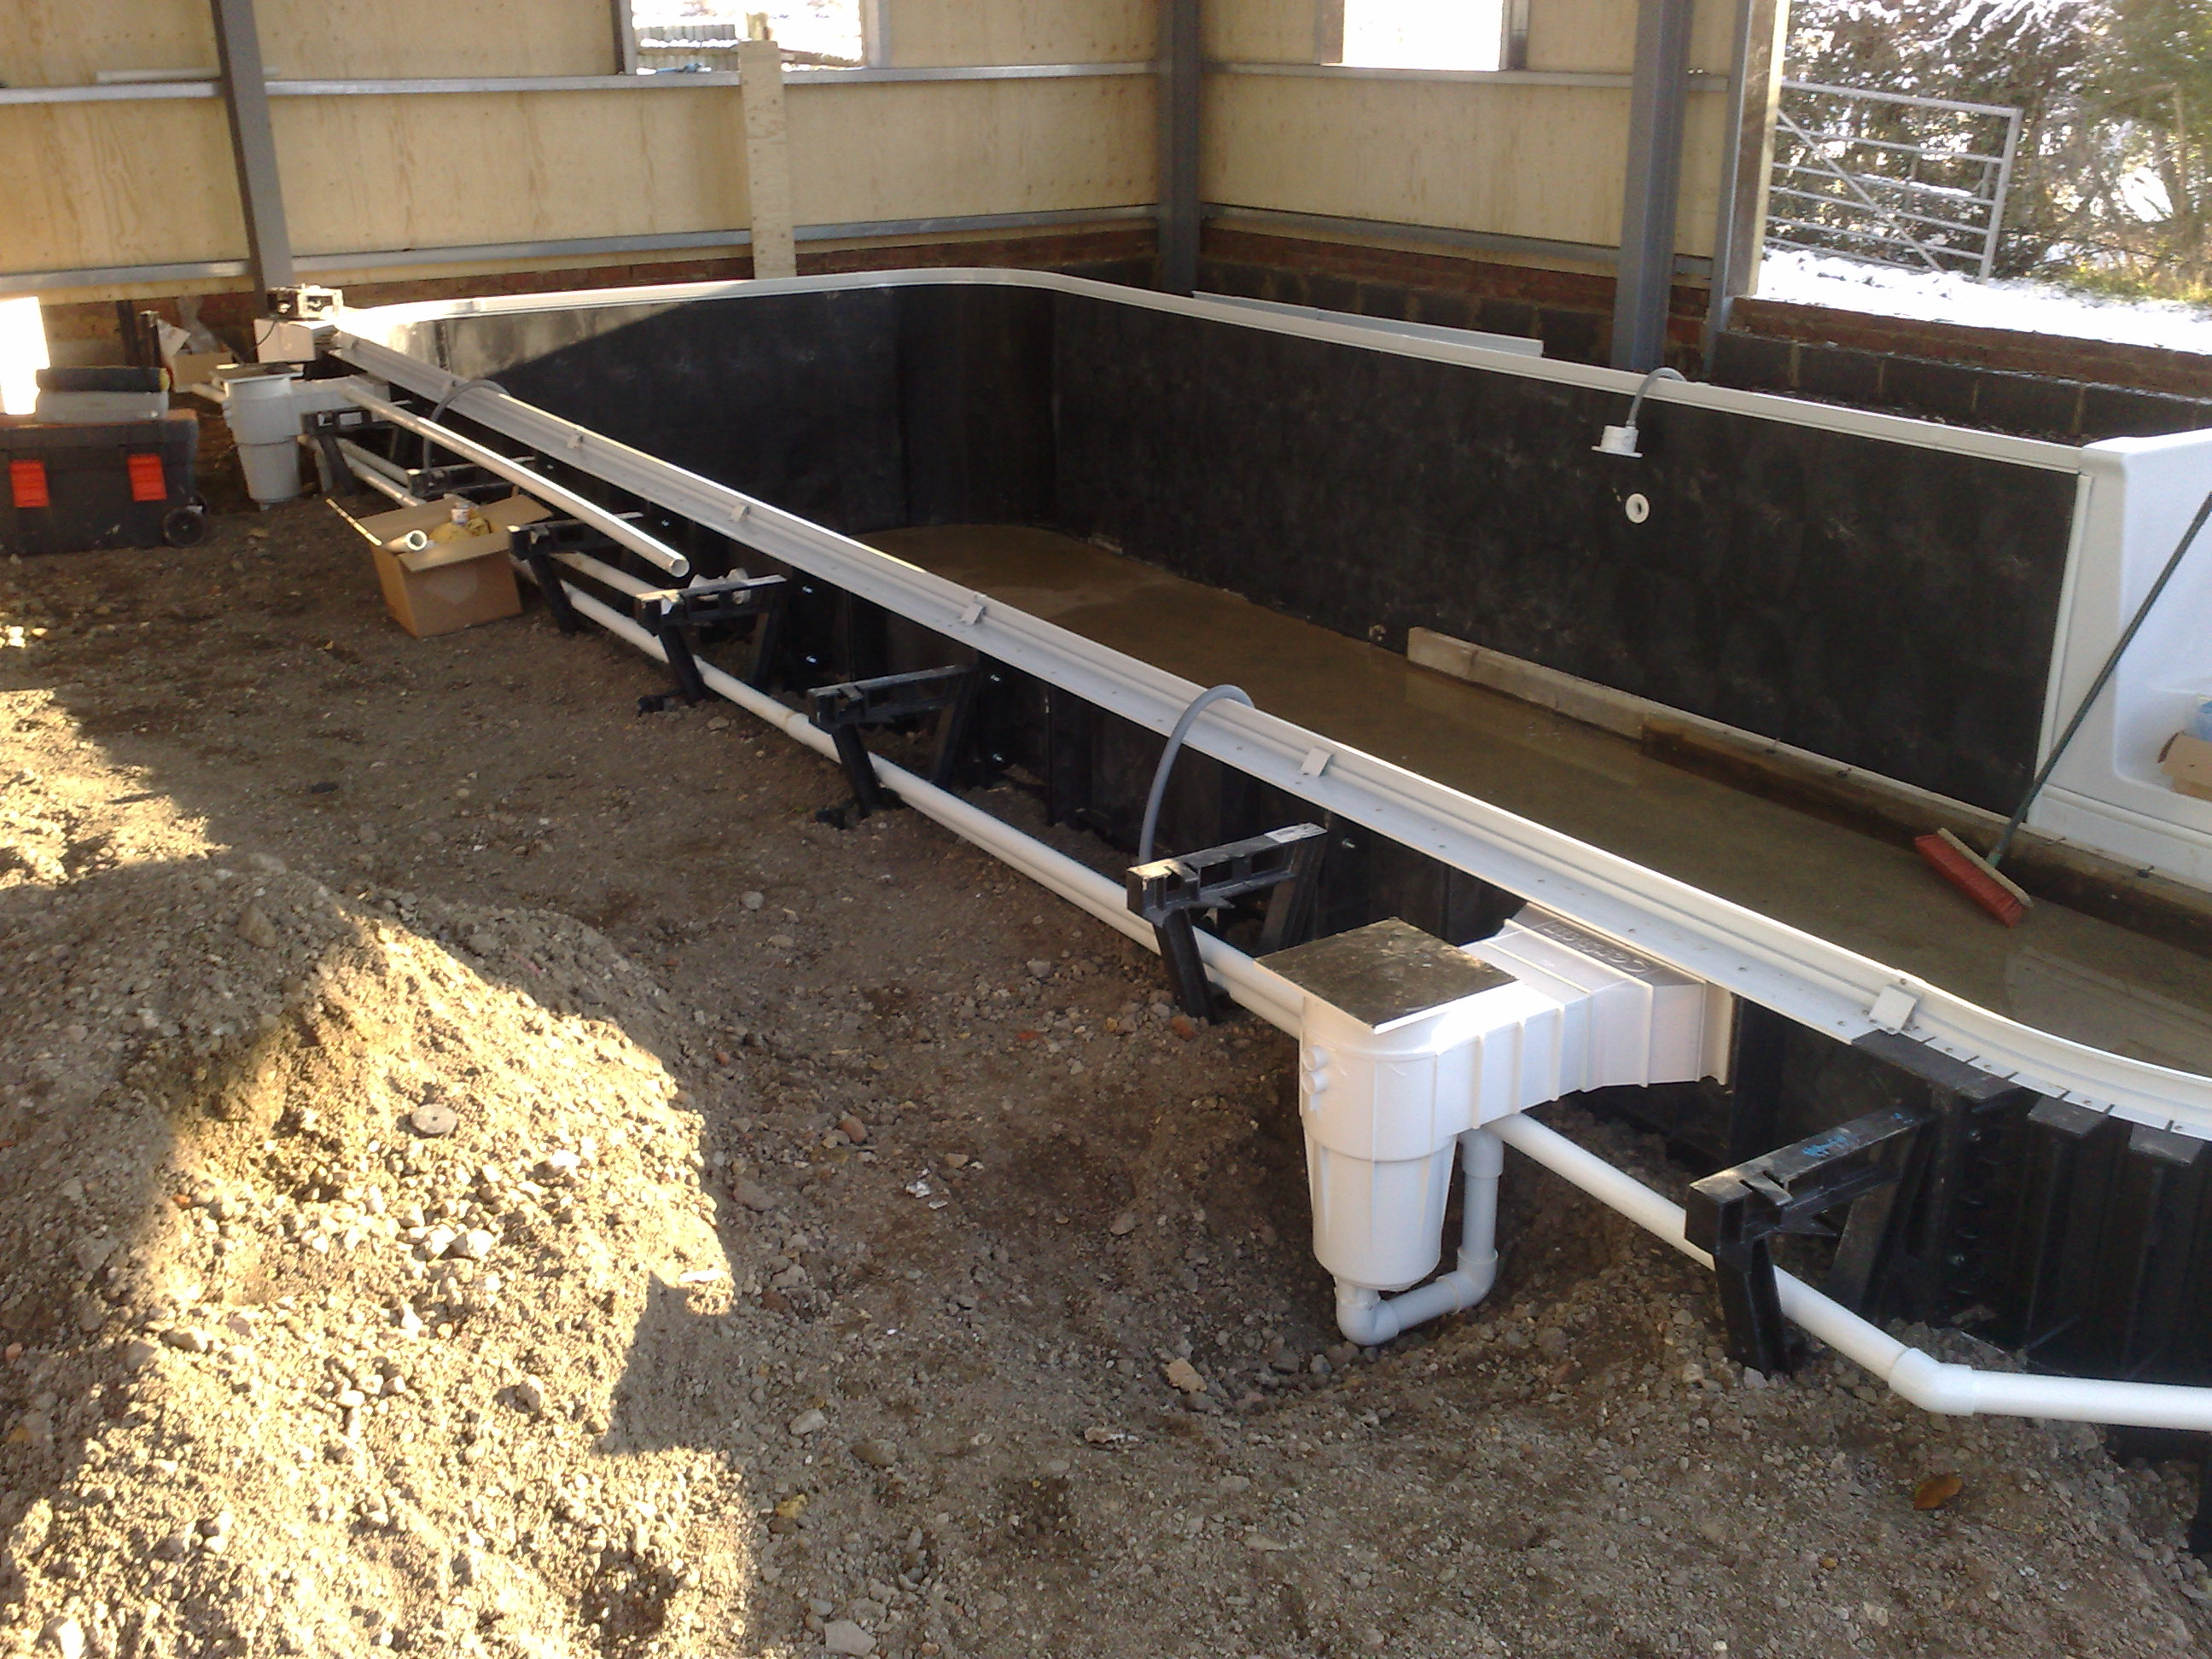 Kafko Polymer Panel swimming pool under construction - skimmer and pipework